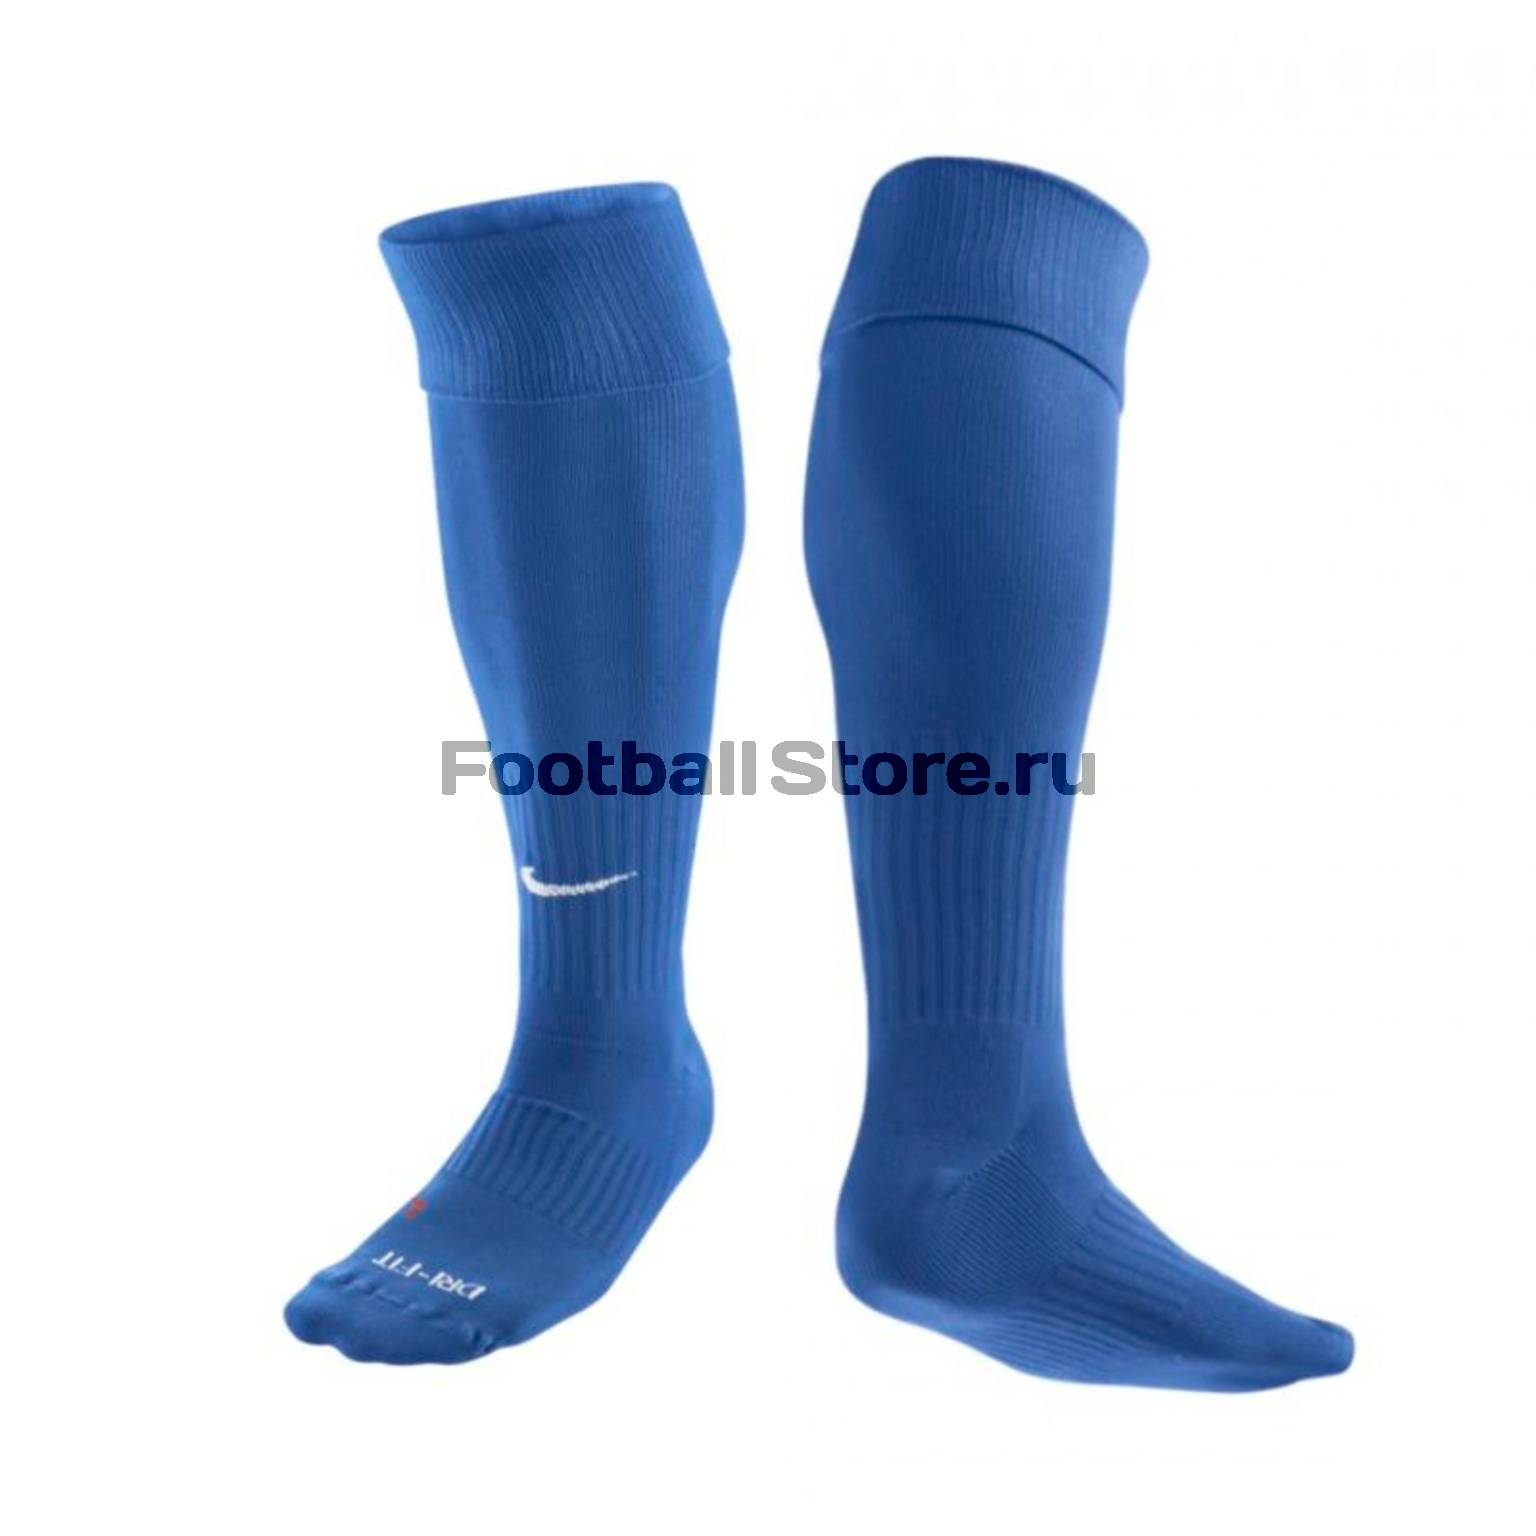 Гетры Nike Гетры Nike Classic Football Dri-Fit SX4120-402 nike nike dri fit home